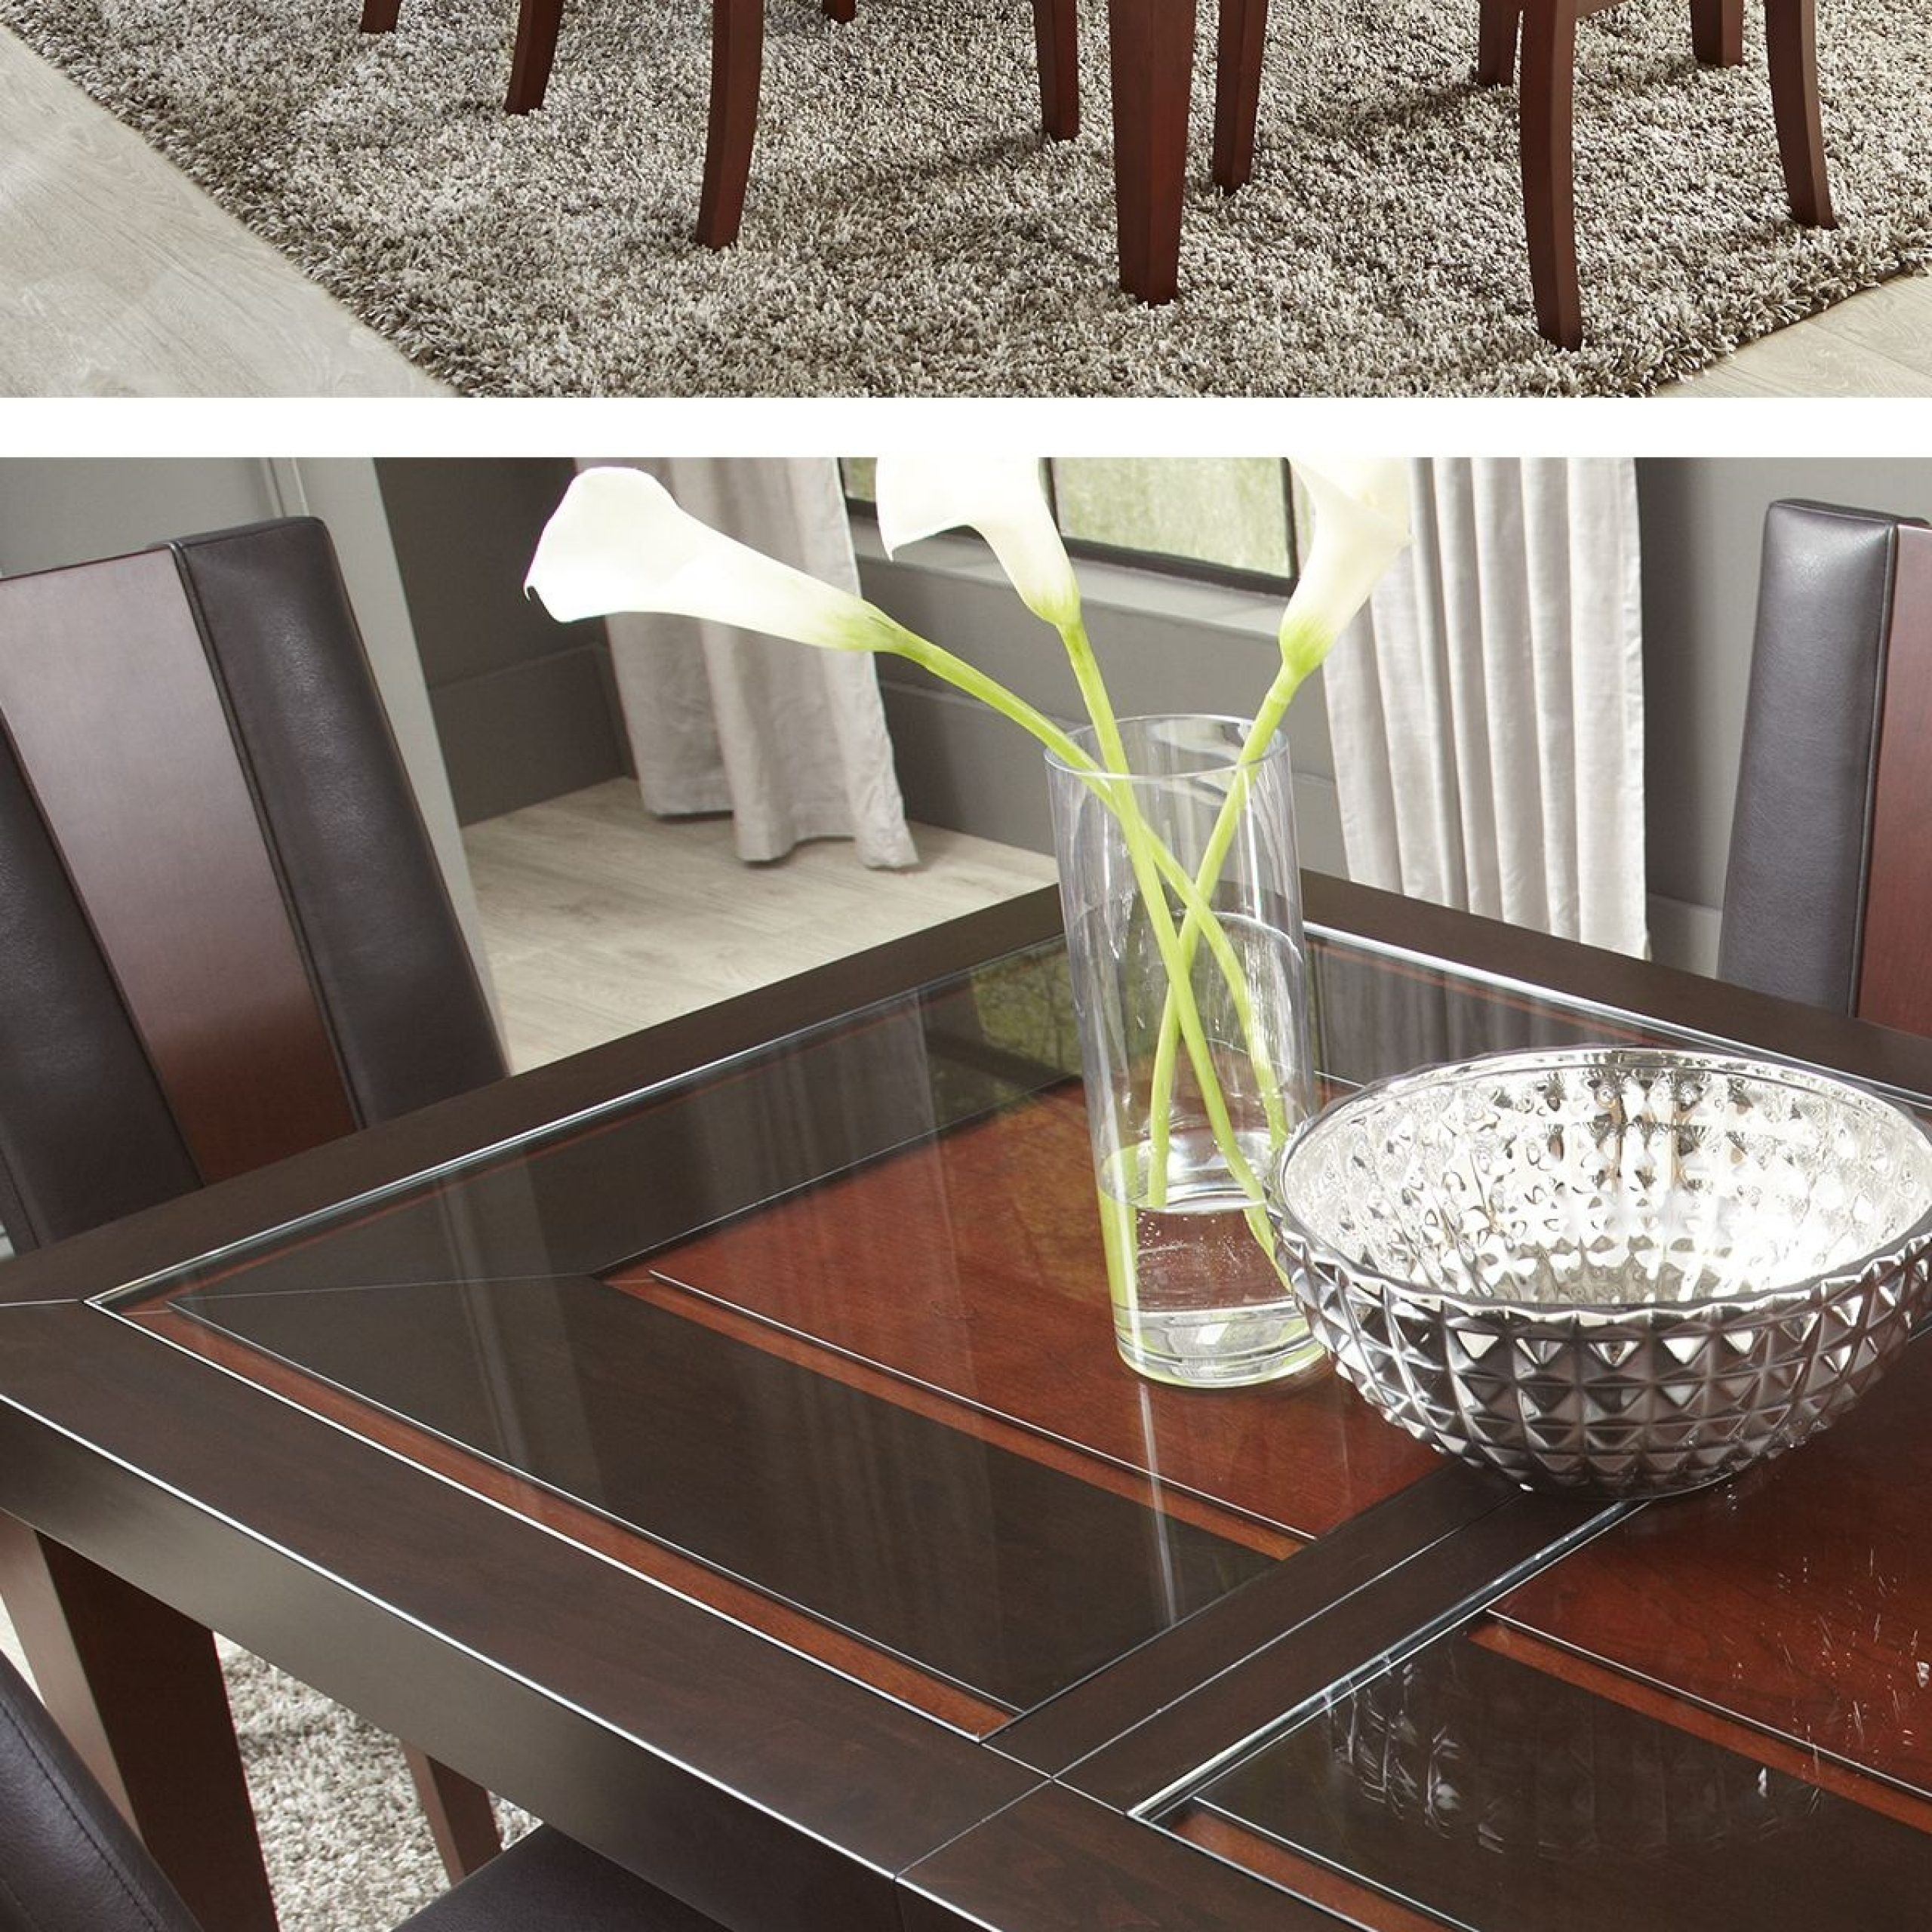 Decorative Rooms to Go Dining Room Furniture On Unbelievable the Savona Dining Collection Offers the sophisticated On Rooms to Go Dining Room Furniture